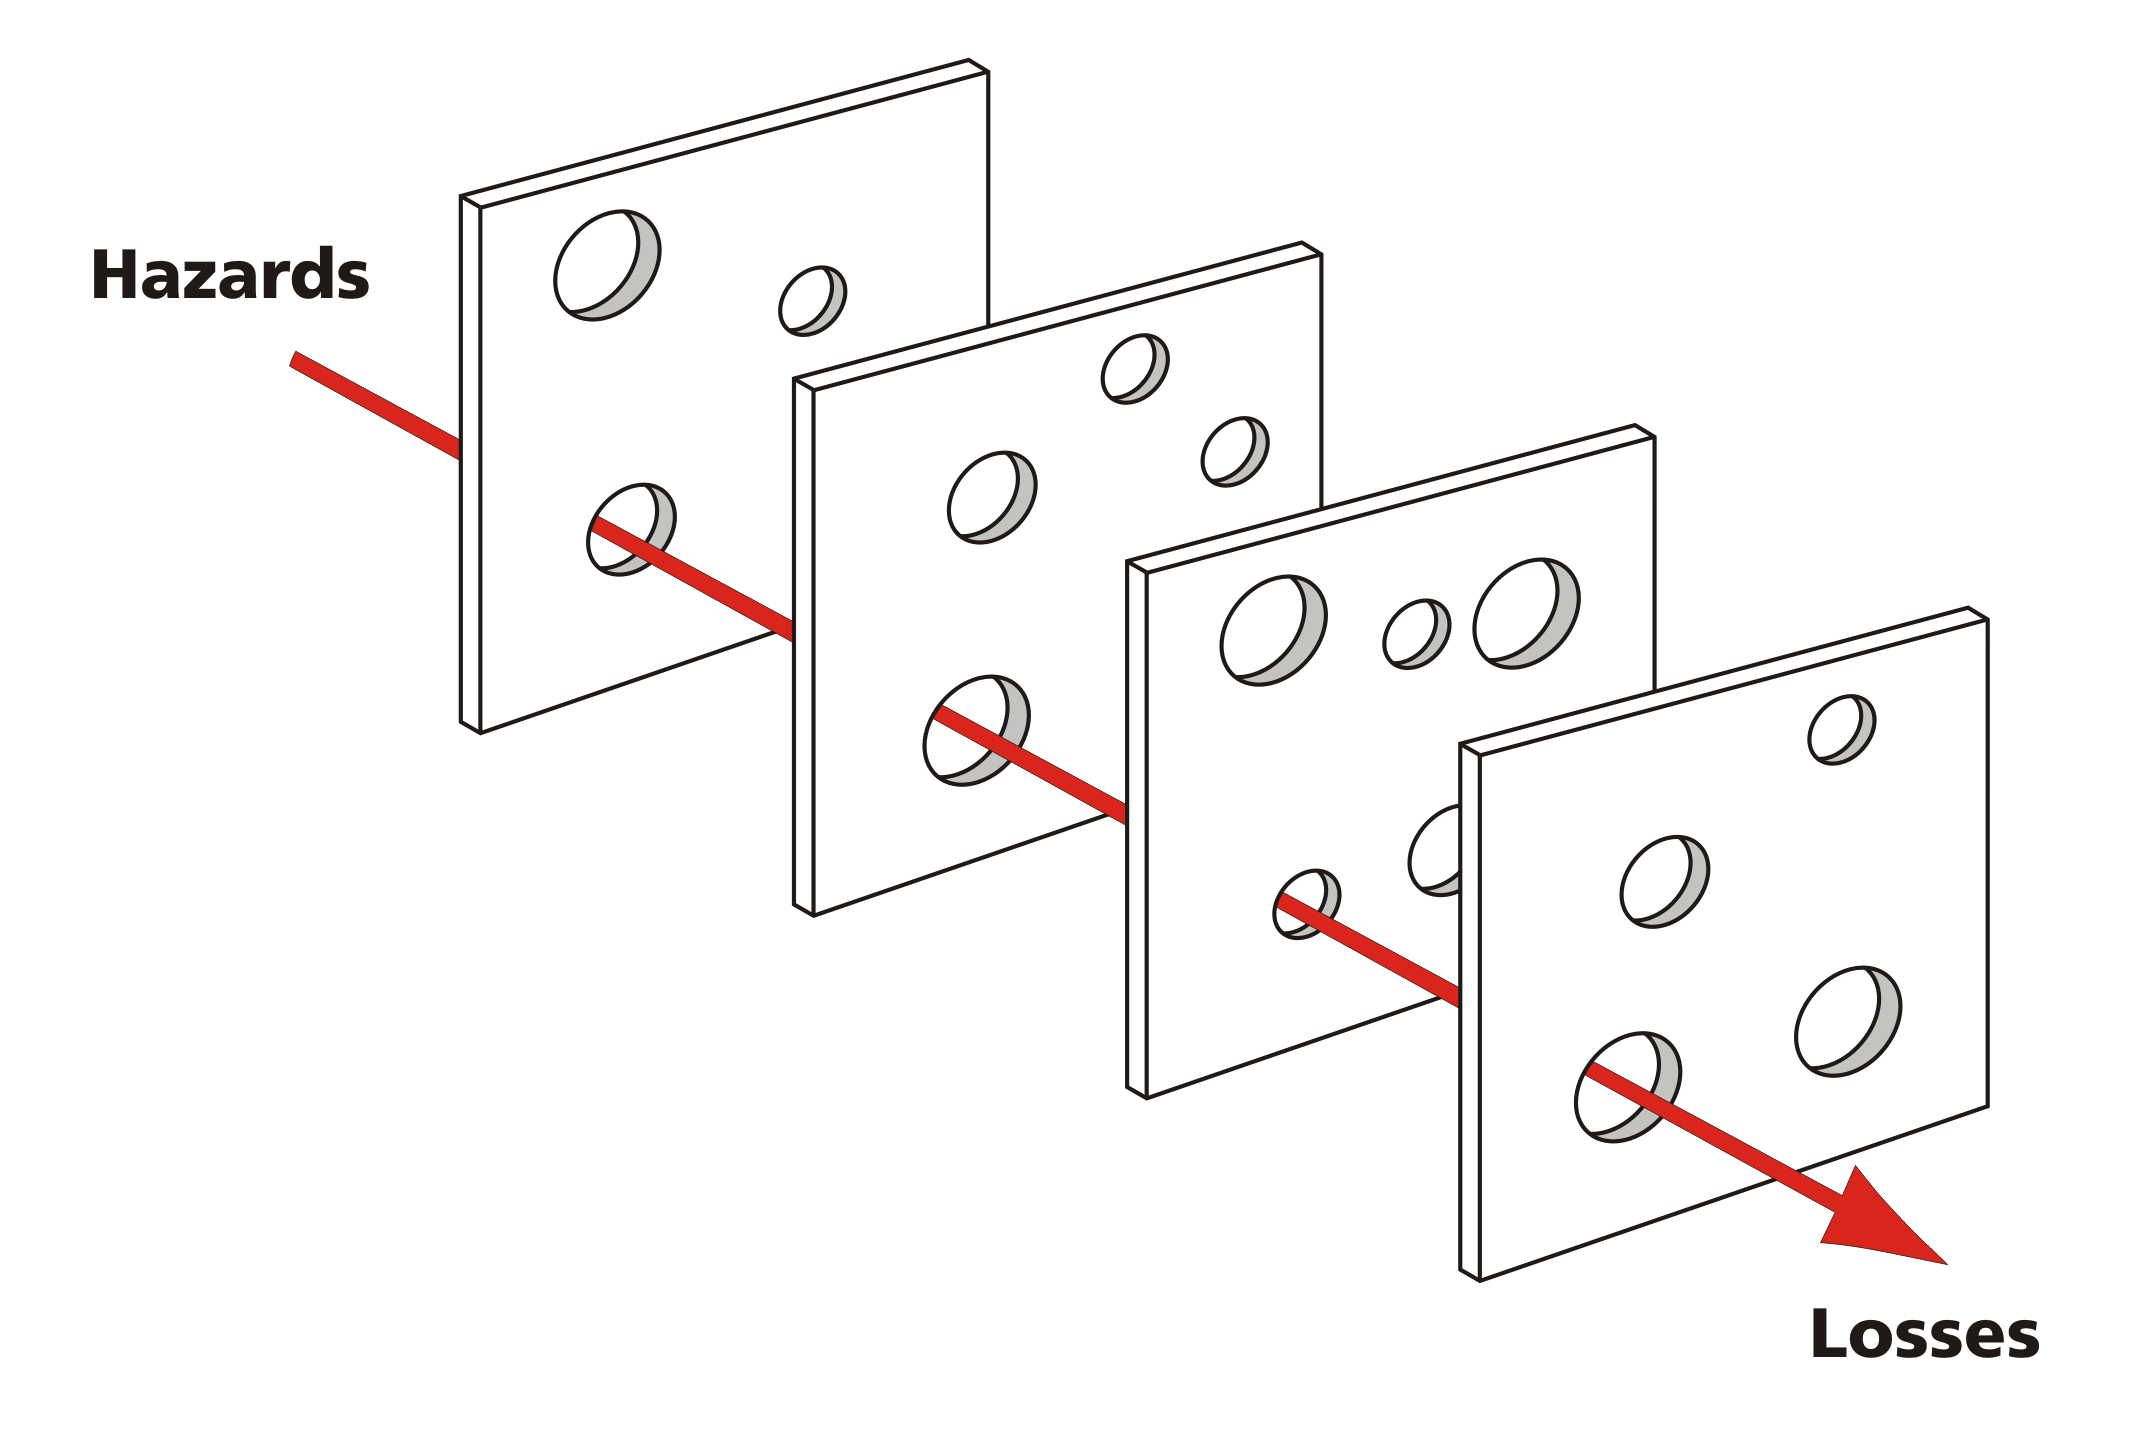 The Swiss cheese model of accident causation. Davidmack - Image Credit:  Wikimedia Commons